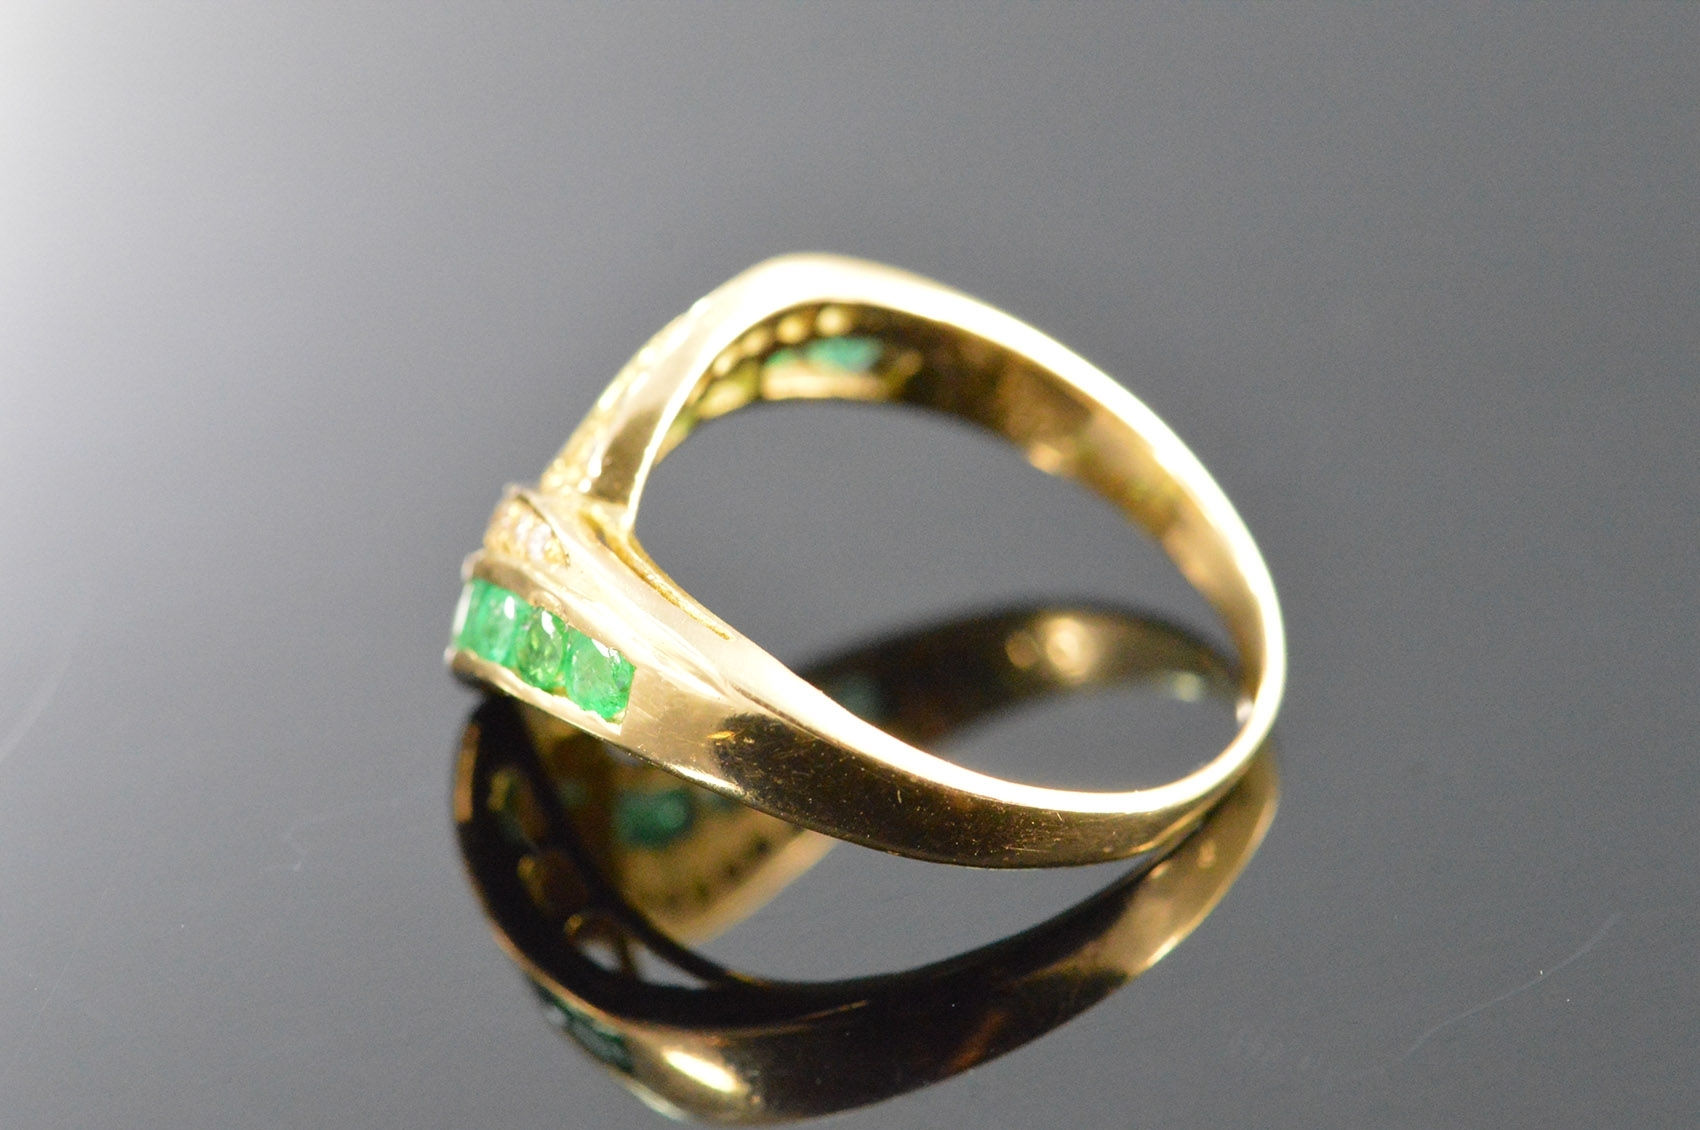 18K 3G 0.31 Ctw Diamond Emerald Chevron Yellow Gold Ring, Size 6 Intended For Most Recent Chevron Emerald Rings (Gallery 11 of 15)